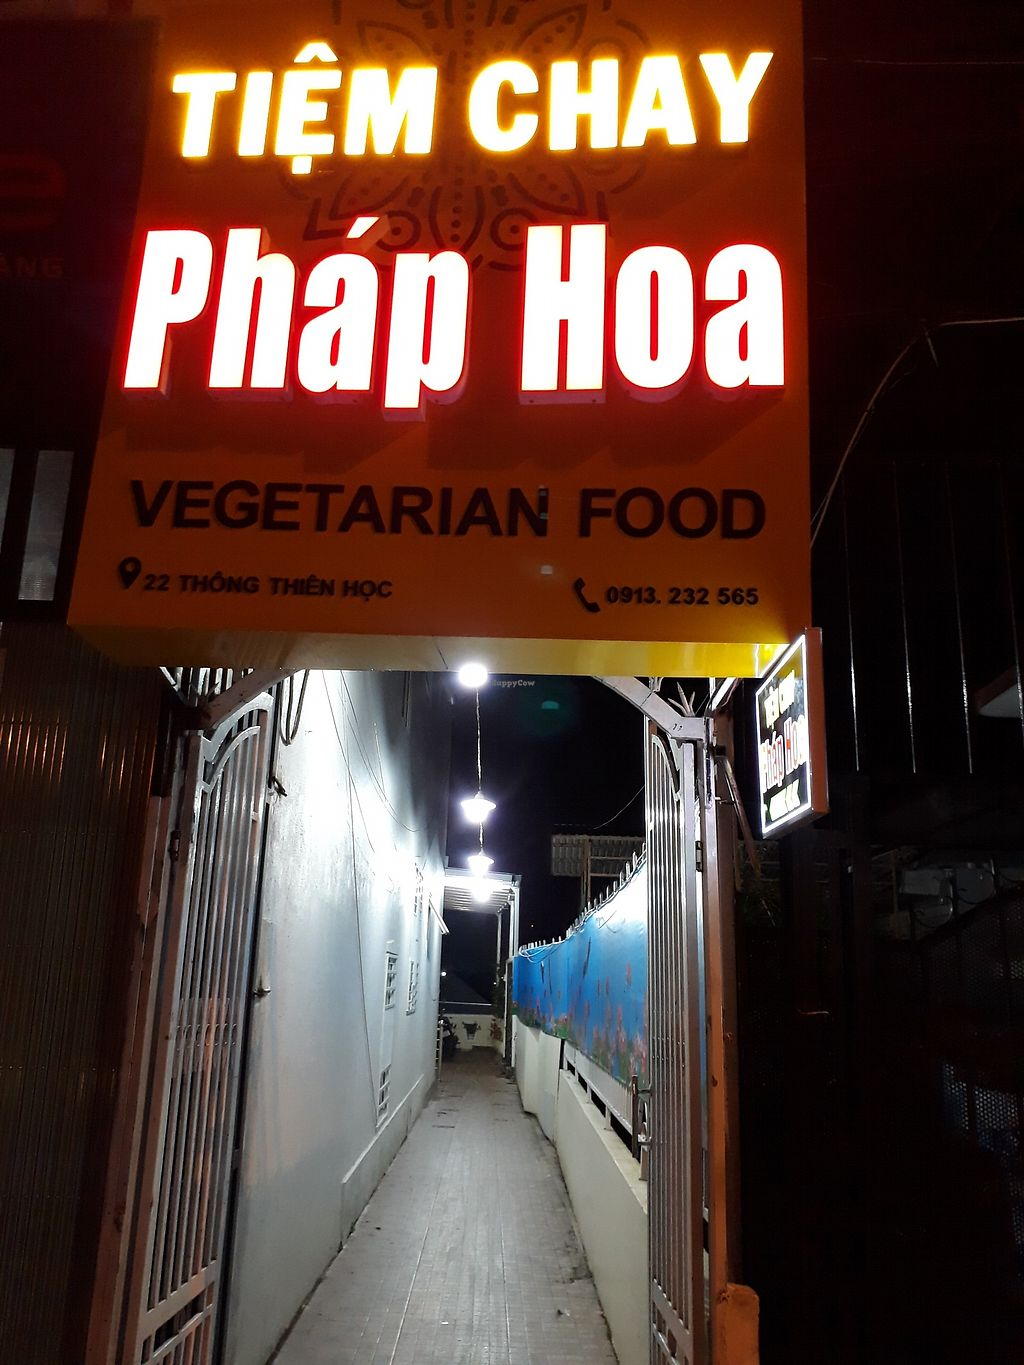 "Photo of  Phap Hoa  by <a href=""/members/profile/Chibinomi"">Chibinomi</a> <br/>Evening <br/> November 19, 2017  - <a href='/contact/abuse/image/105455/326901'>Report</a>"